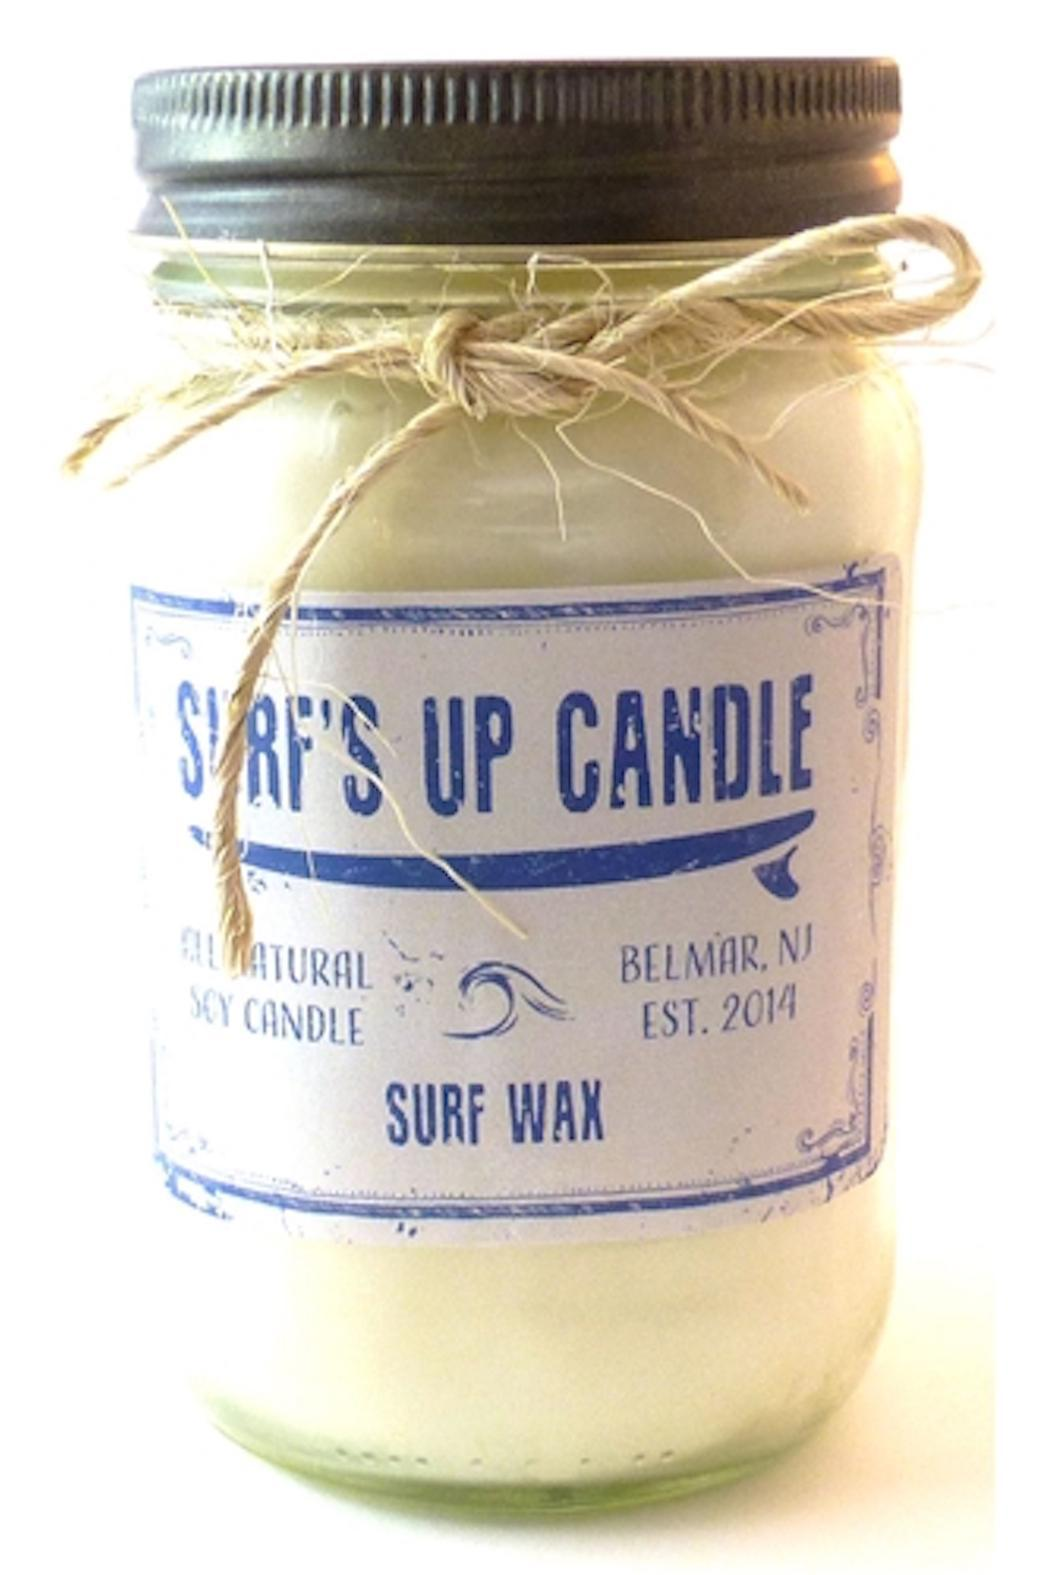 Surf's Up Candle Surf Wax Candle - Main Image